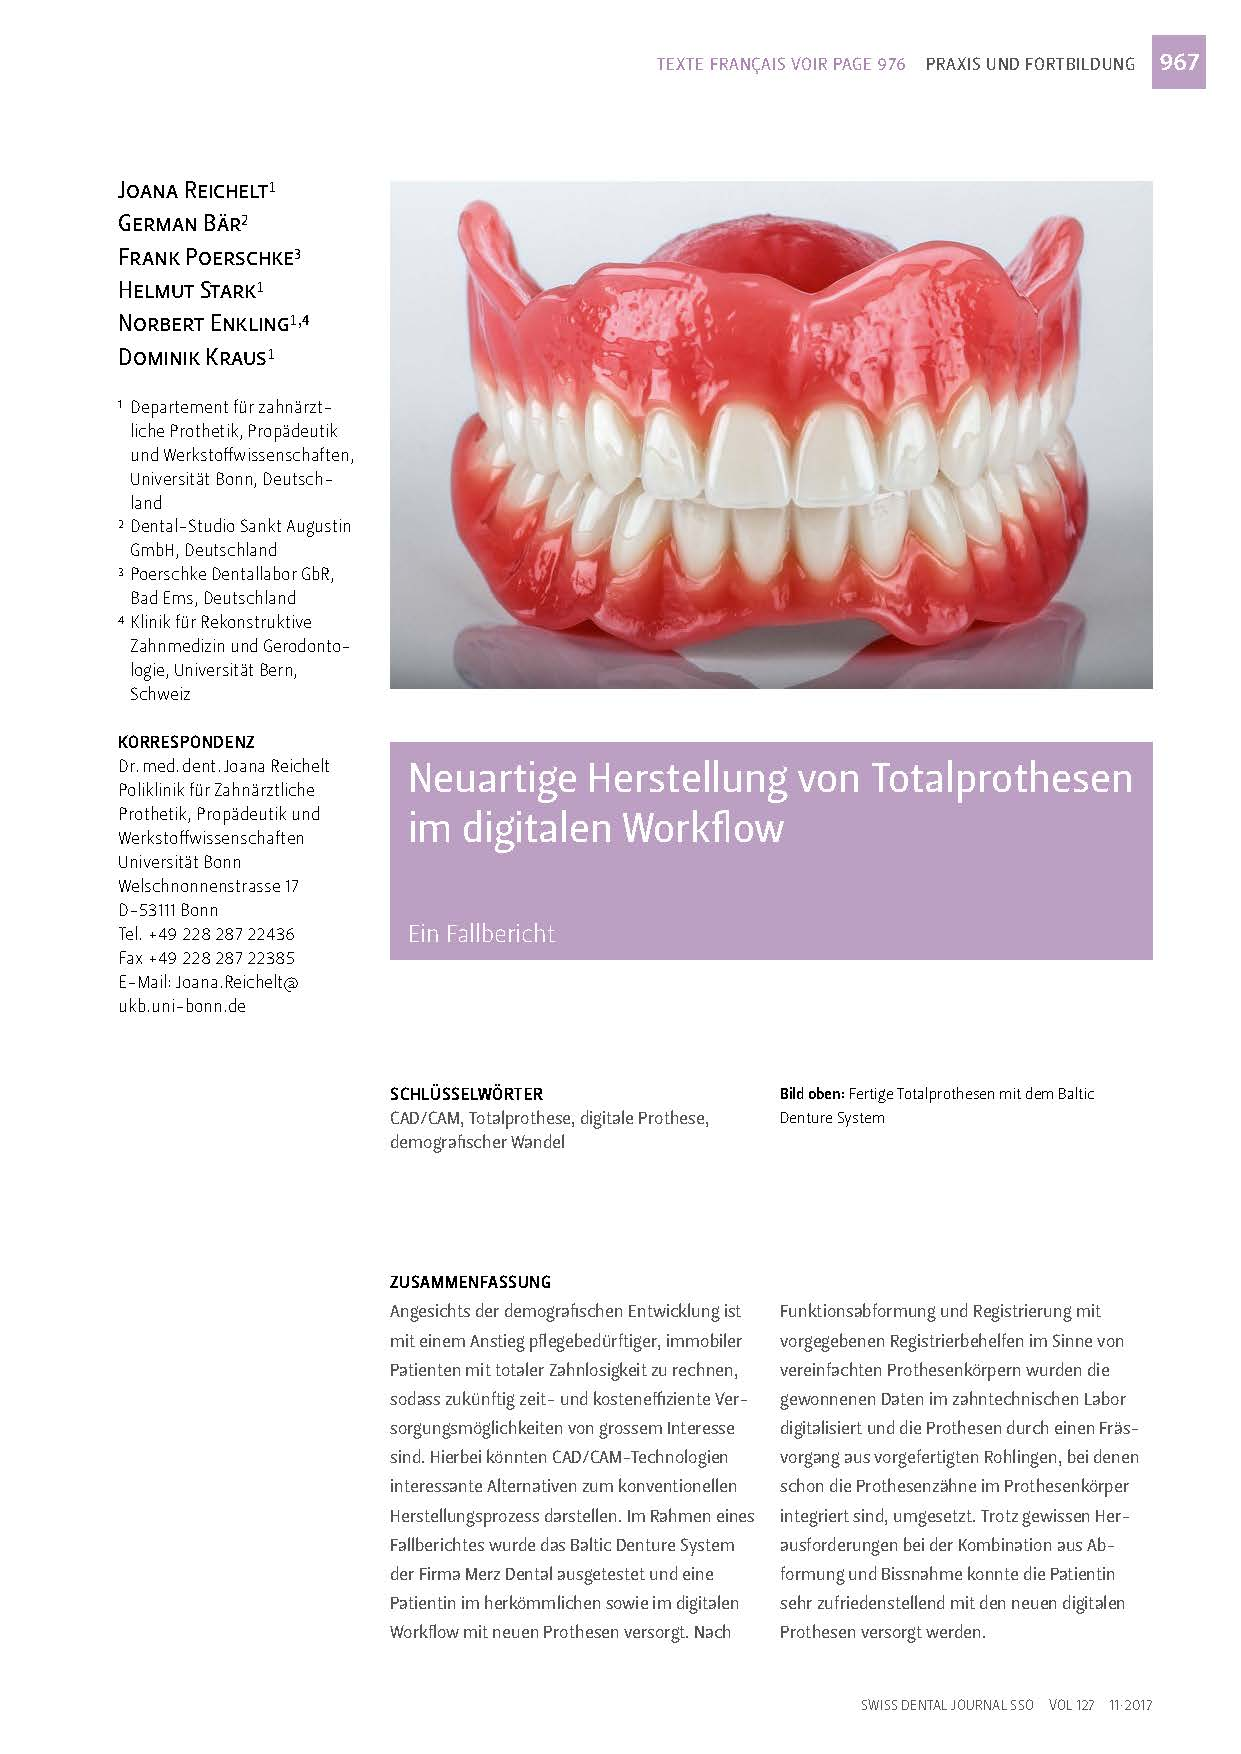 "download image - Swiss Dental Journal SSO 11/2017: ""Neuartige Herstellung von Totalprothesen im digitalen Workflow"